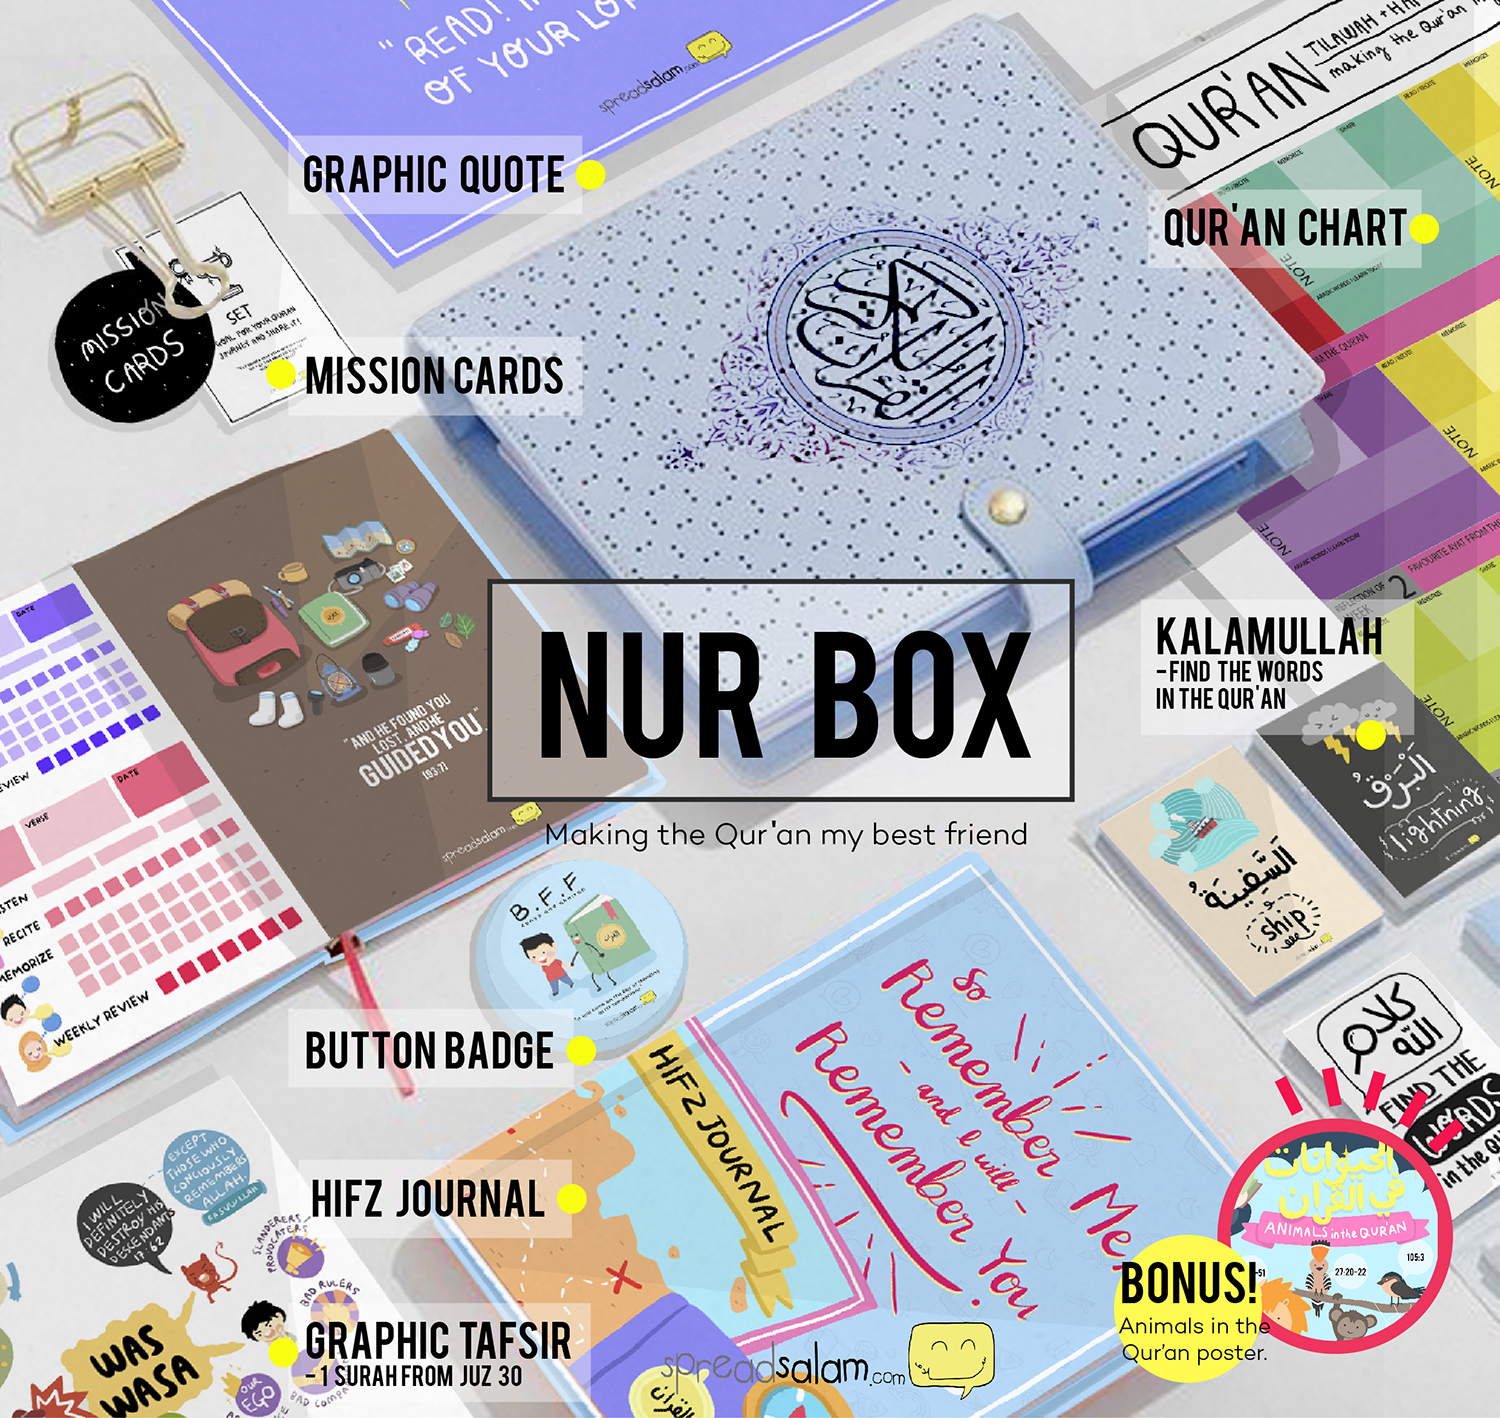 all backers of gbp30 and above will receive our new product the nurbox and other awesome things